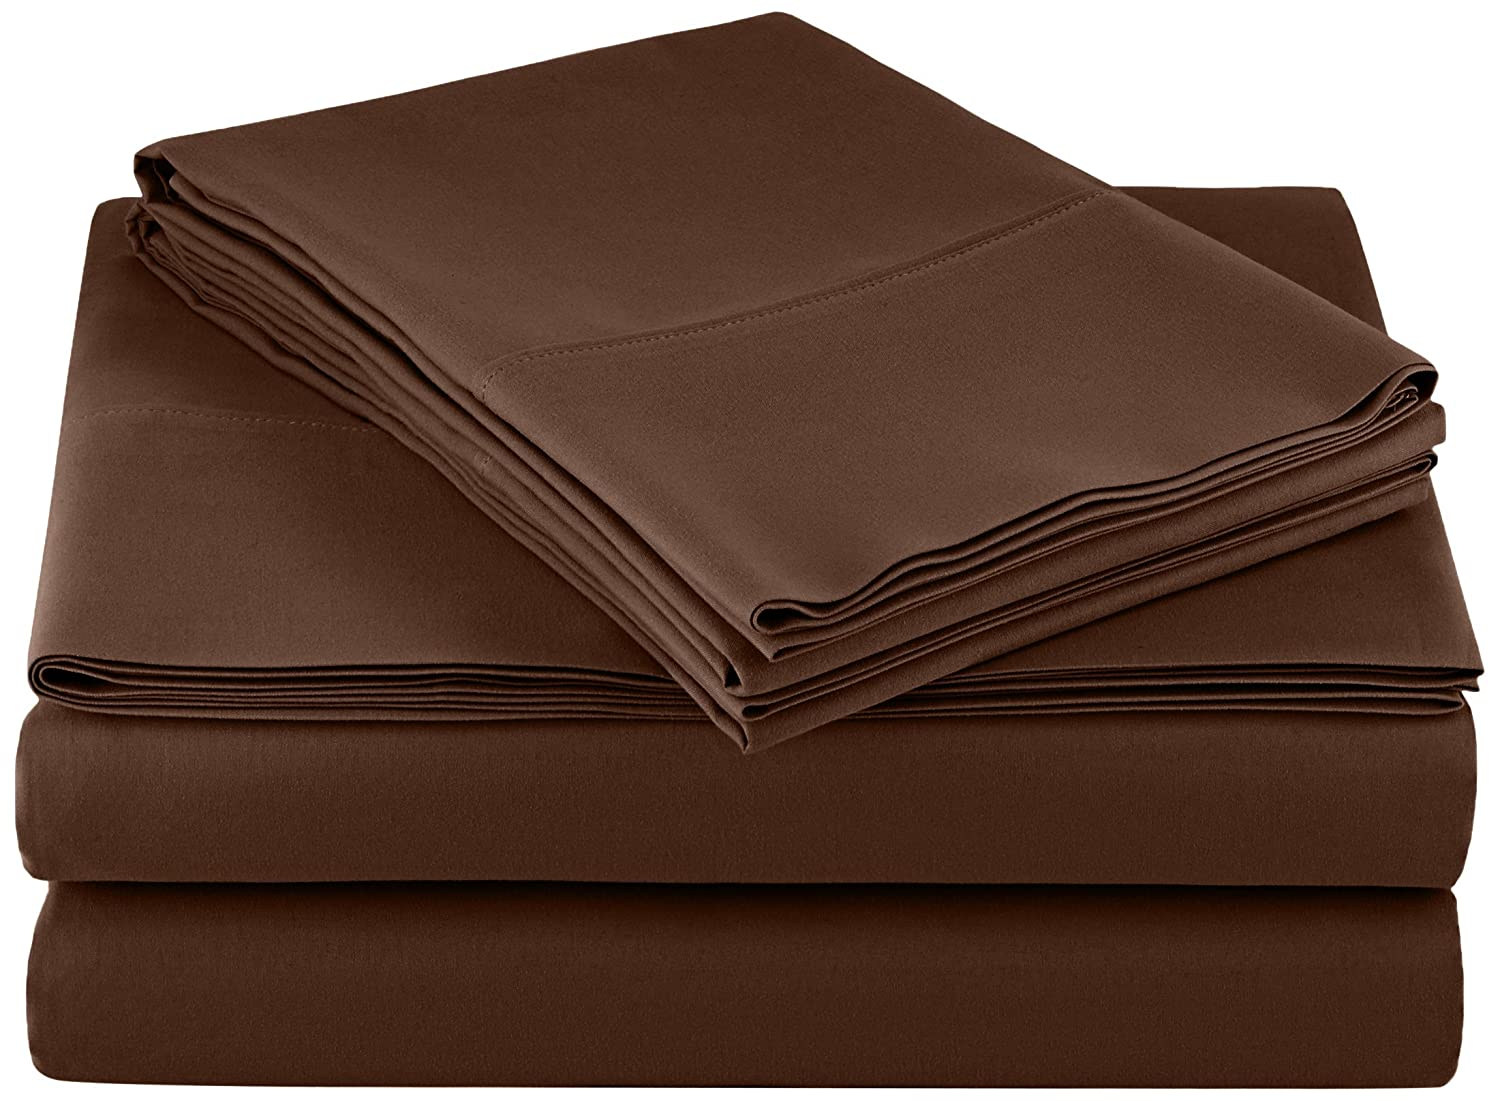 AmazonBasics Microfiber Sheet Set, Cal King, Chocolate